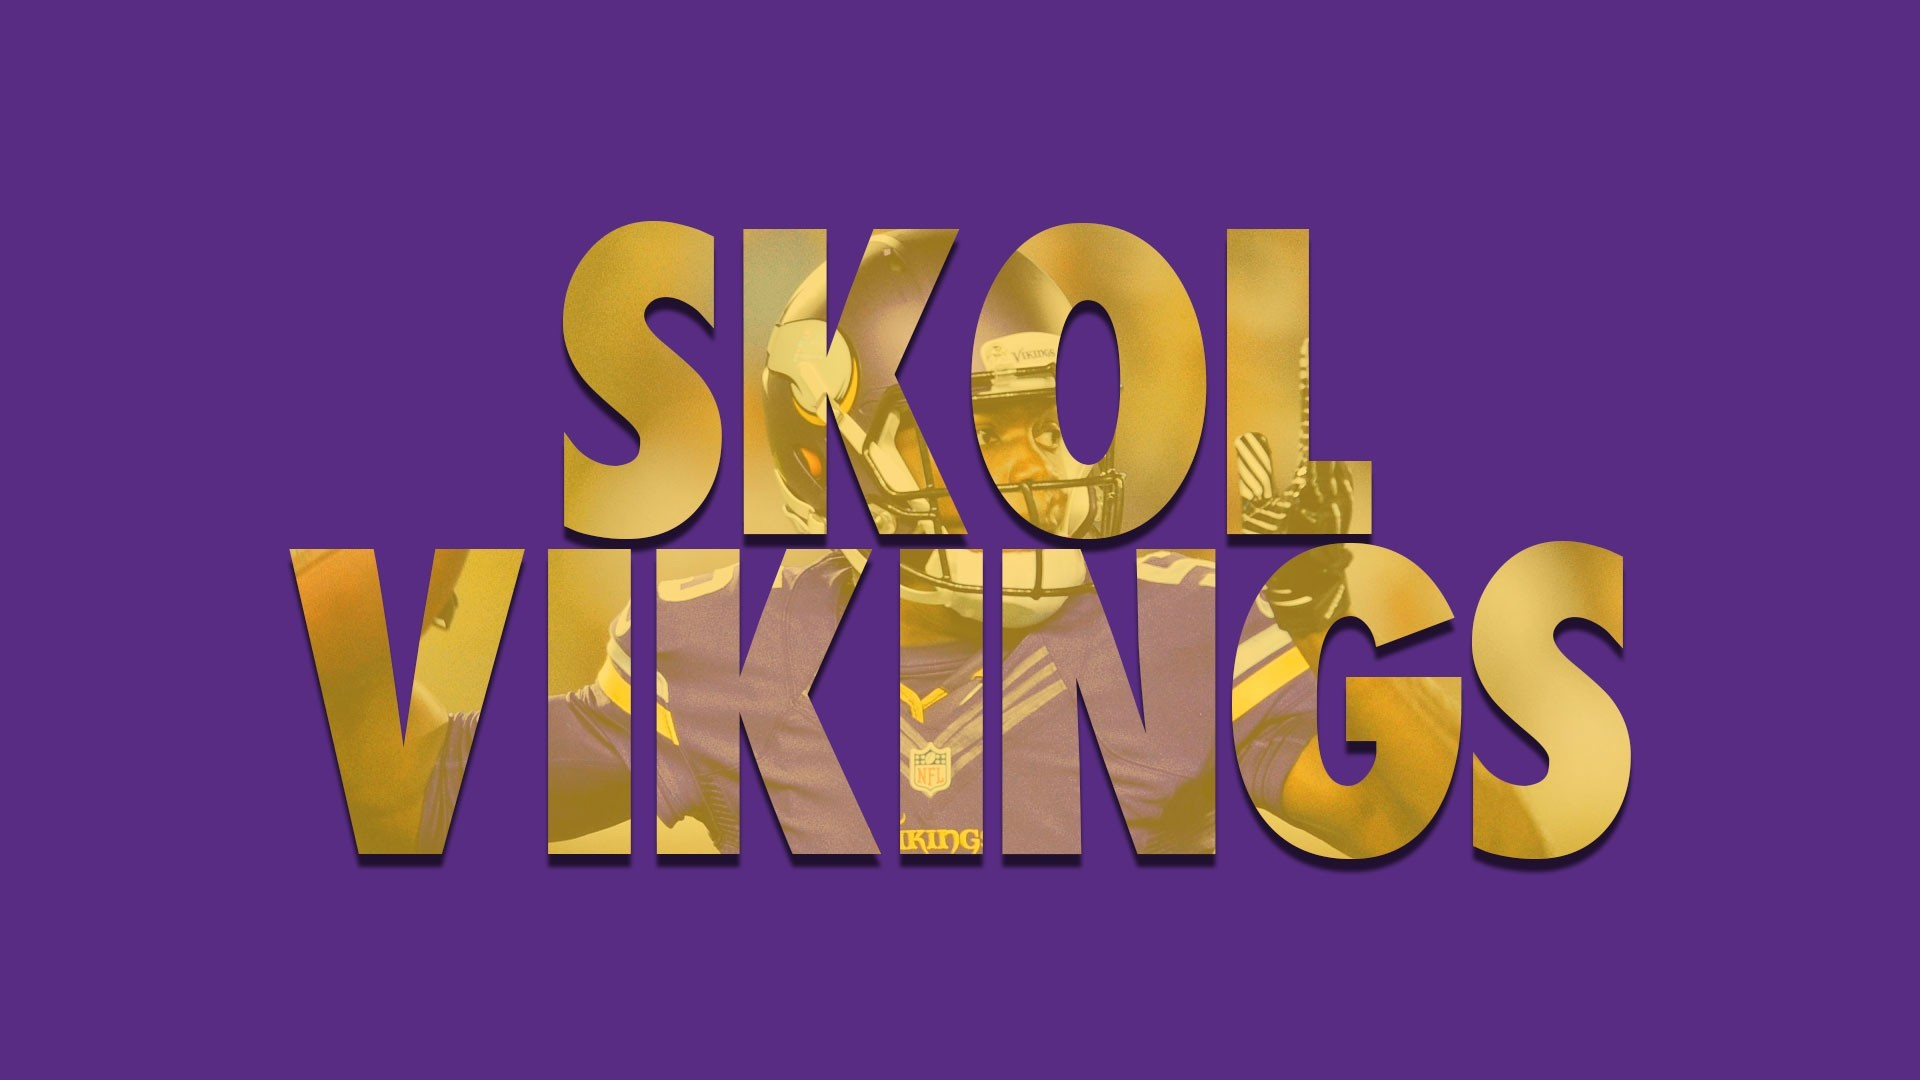 Minnesota Vikings Wallpaper For Desktop 78 Images